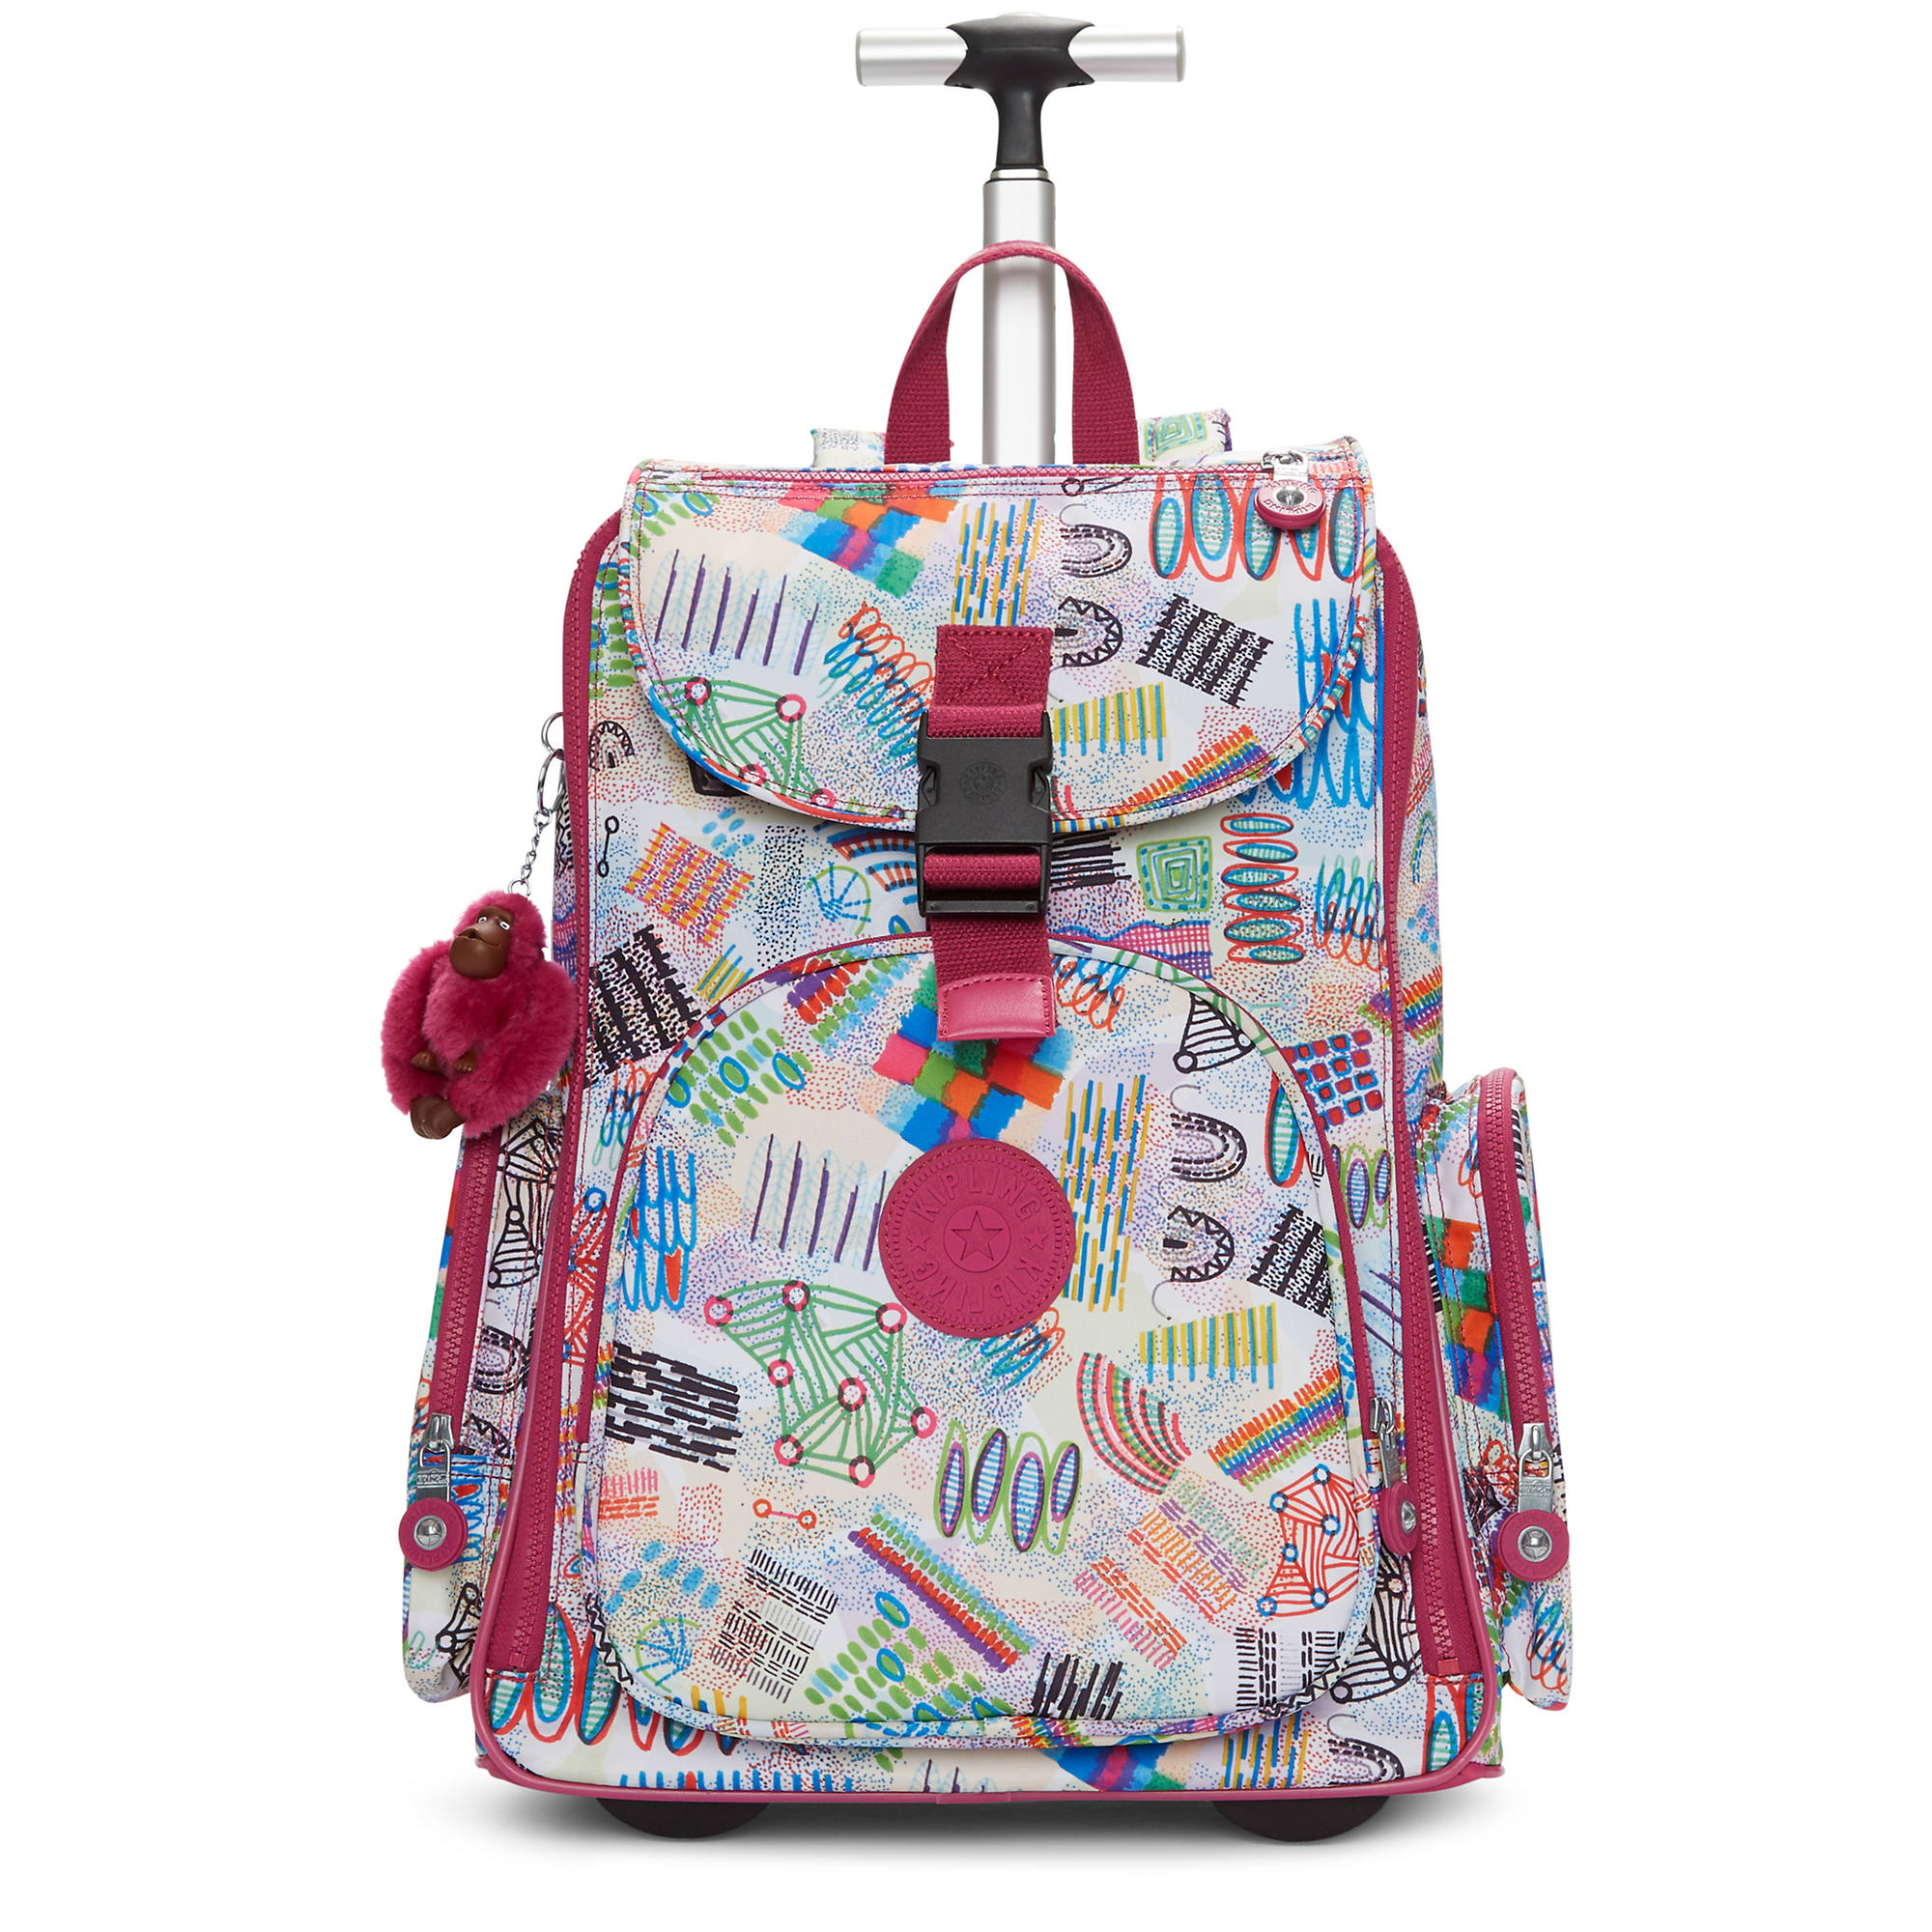 carry on luggage bags right size bags to take on a plane kipling